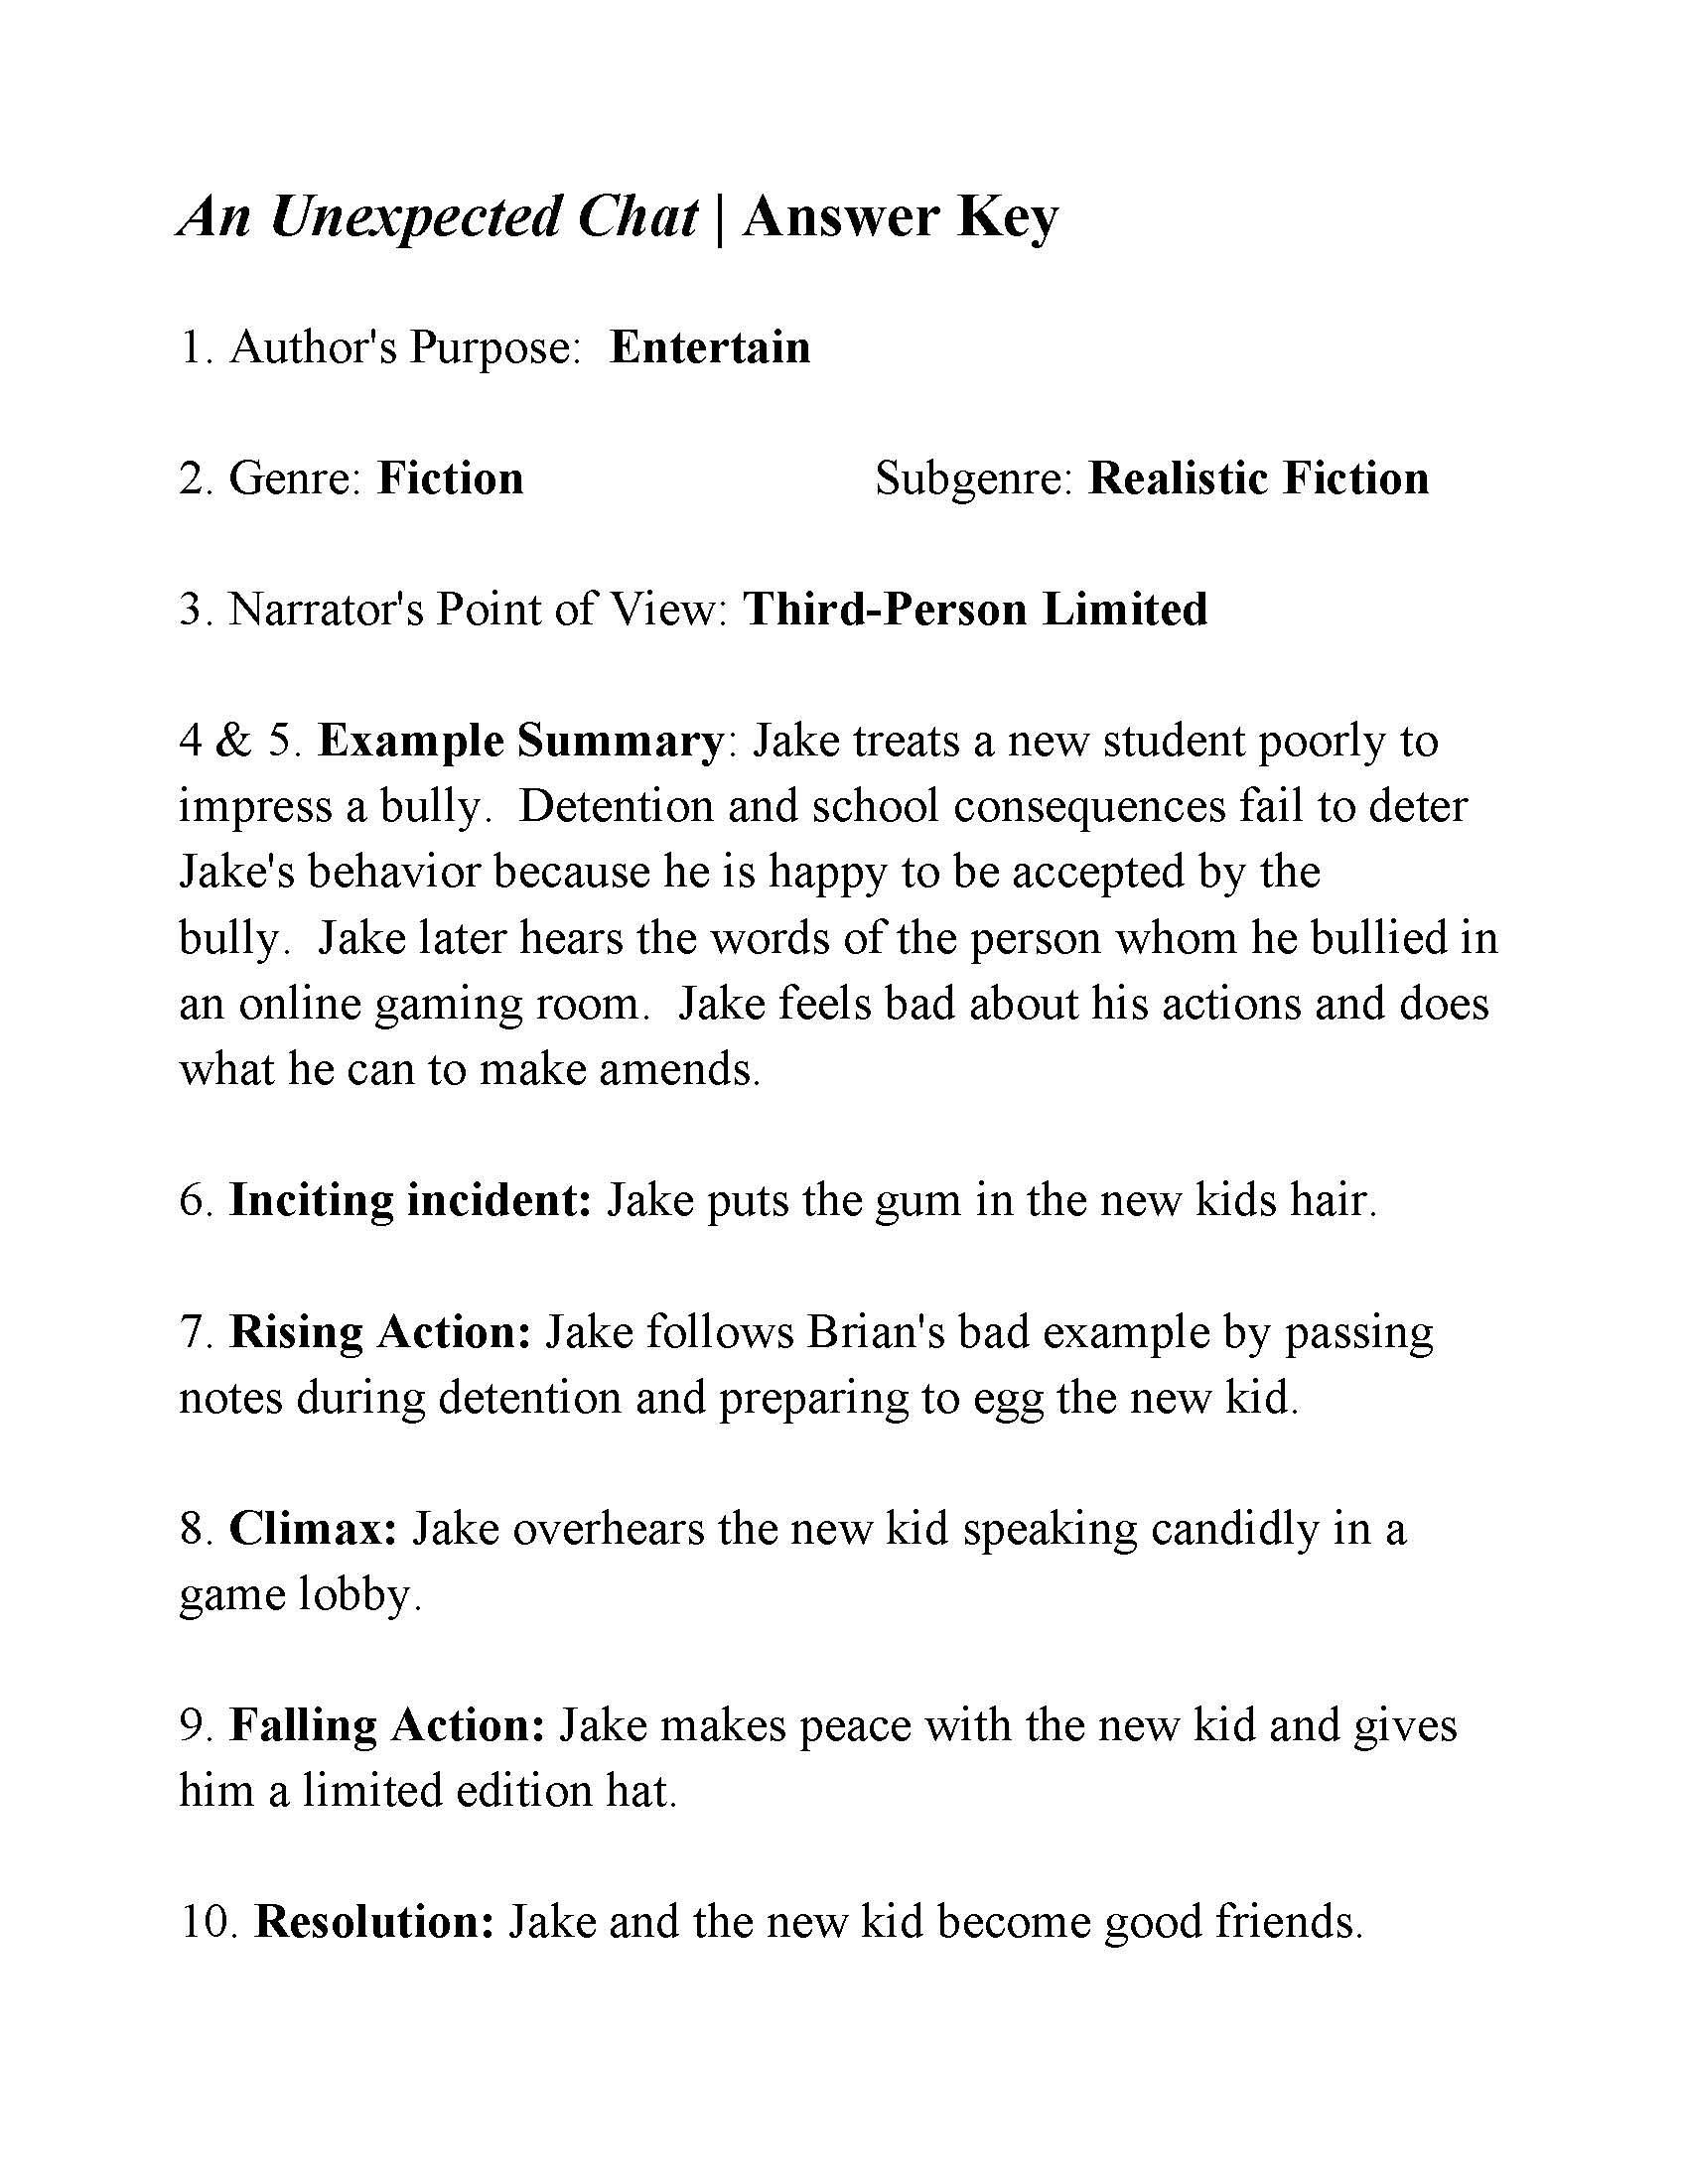 5 Number Summary Worksheet Worksheets Are An Important Part Of Gaining Knowledge Of English In 2021 Life Hacks For School Authors Purpose Story Structure Worksheets [ 2200 x 1700 Pixel ]